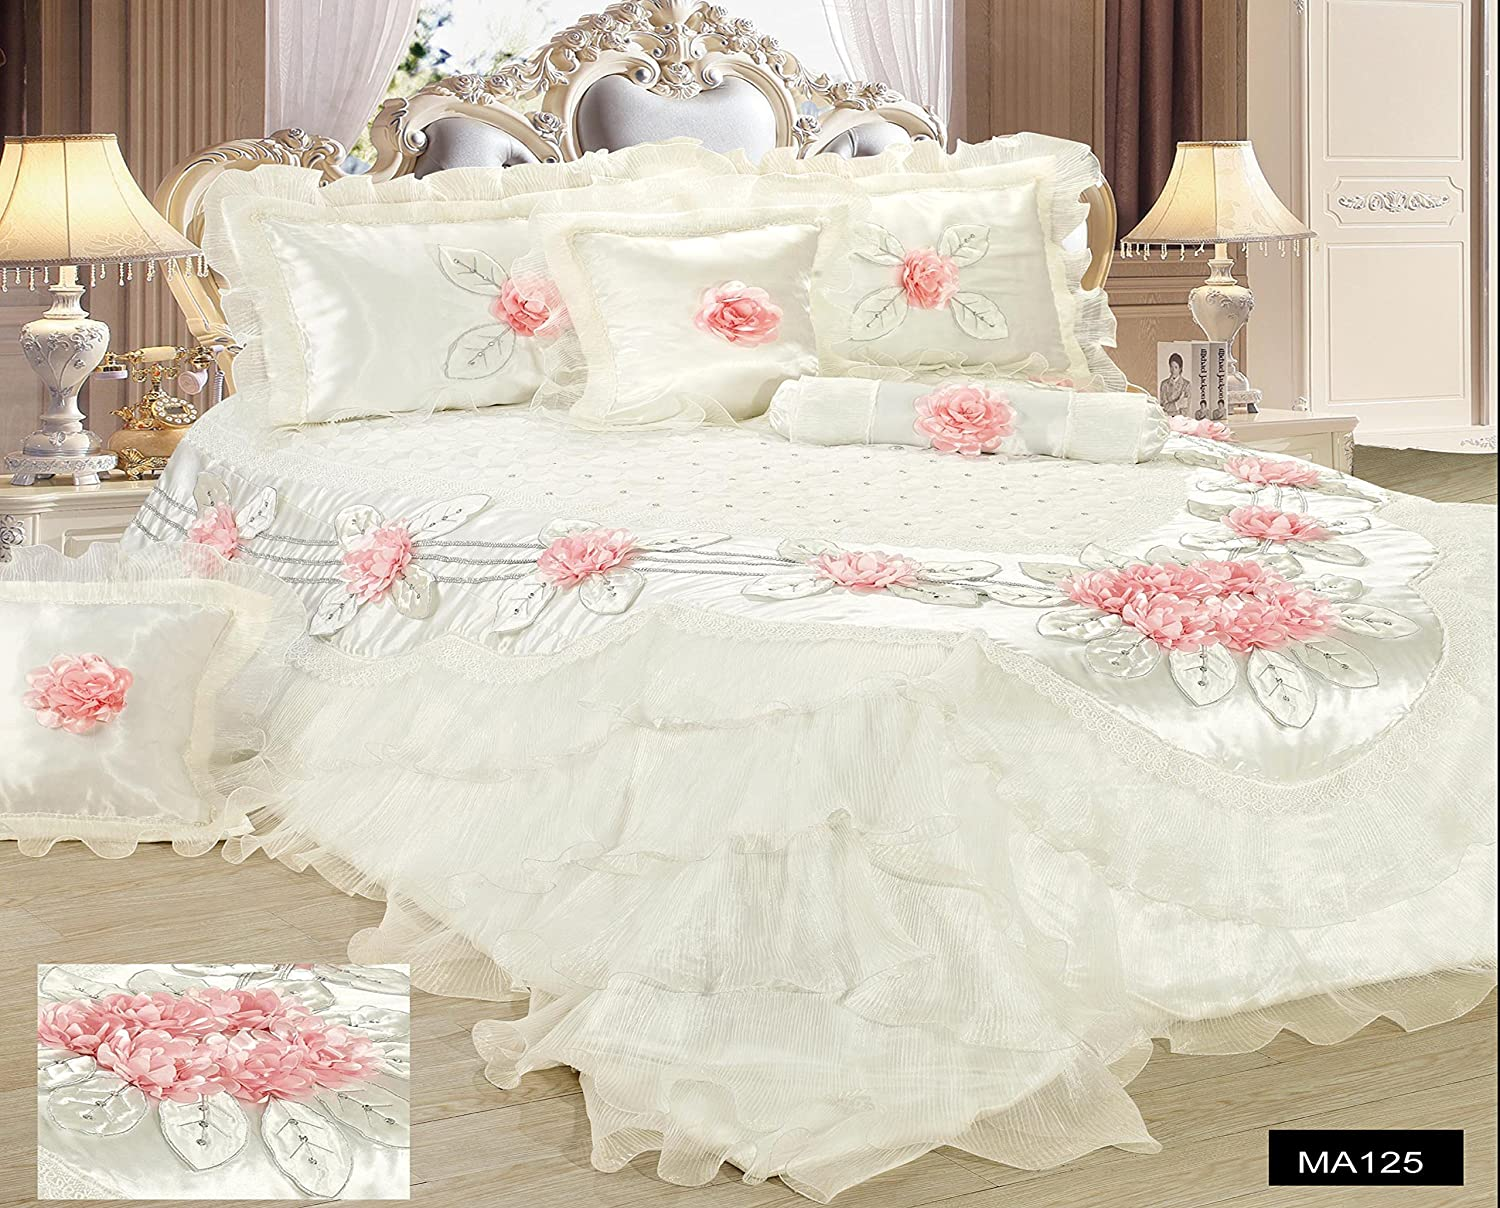 Victorian Bedding Collections Ease Bedding With Style